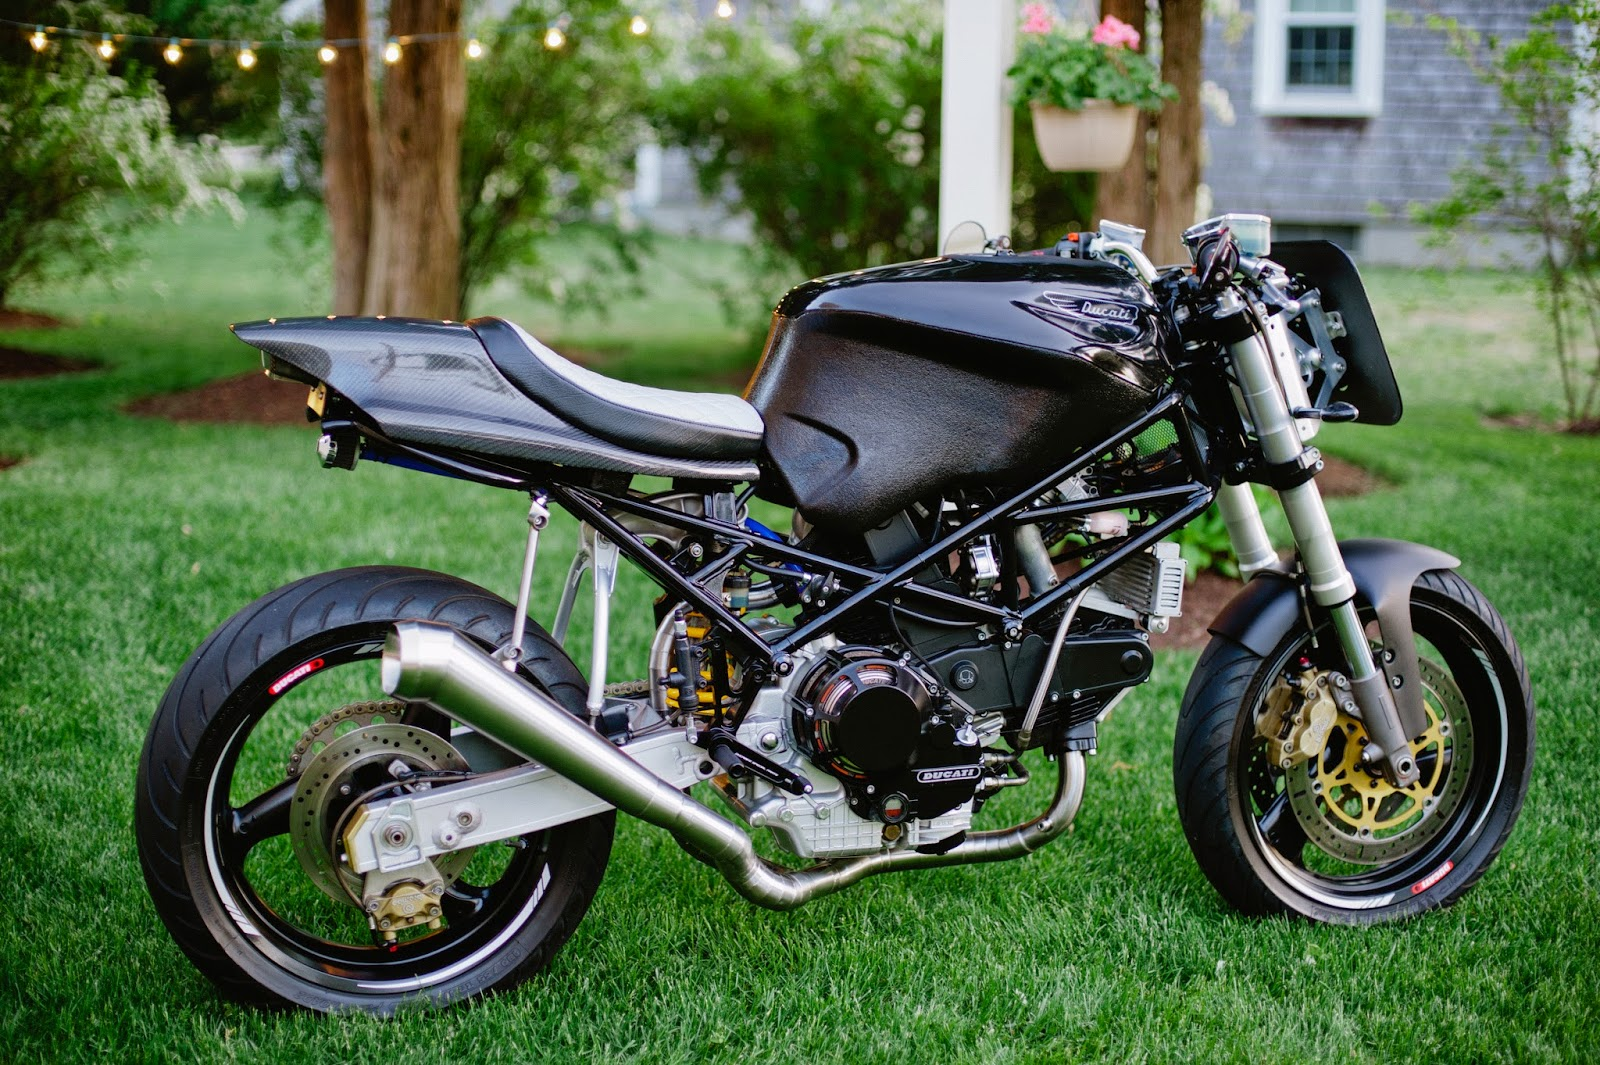 Koso Meter Wiring Monstertracker Ducati Monster 900 1995 Ive Had Some Comments About People Not Liking The Aluminum Colored Brackets That Support Headlight Plate On Front Of Bike